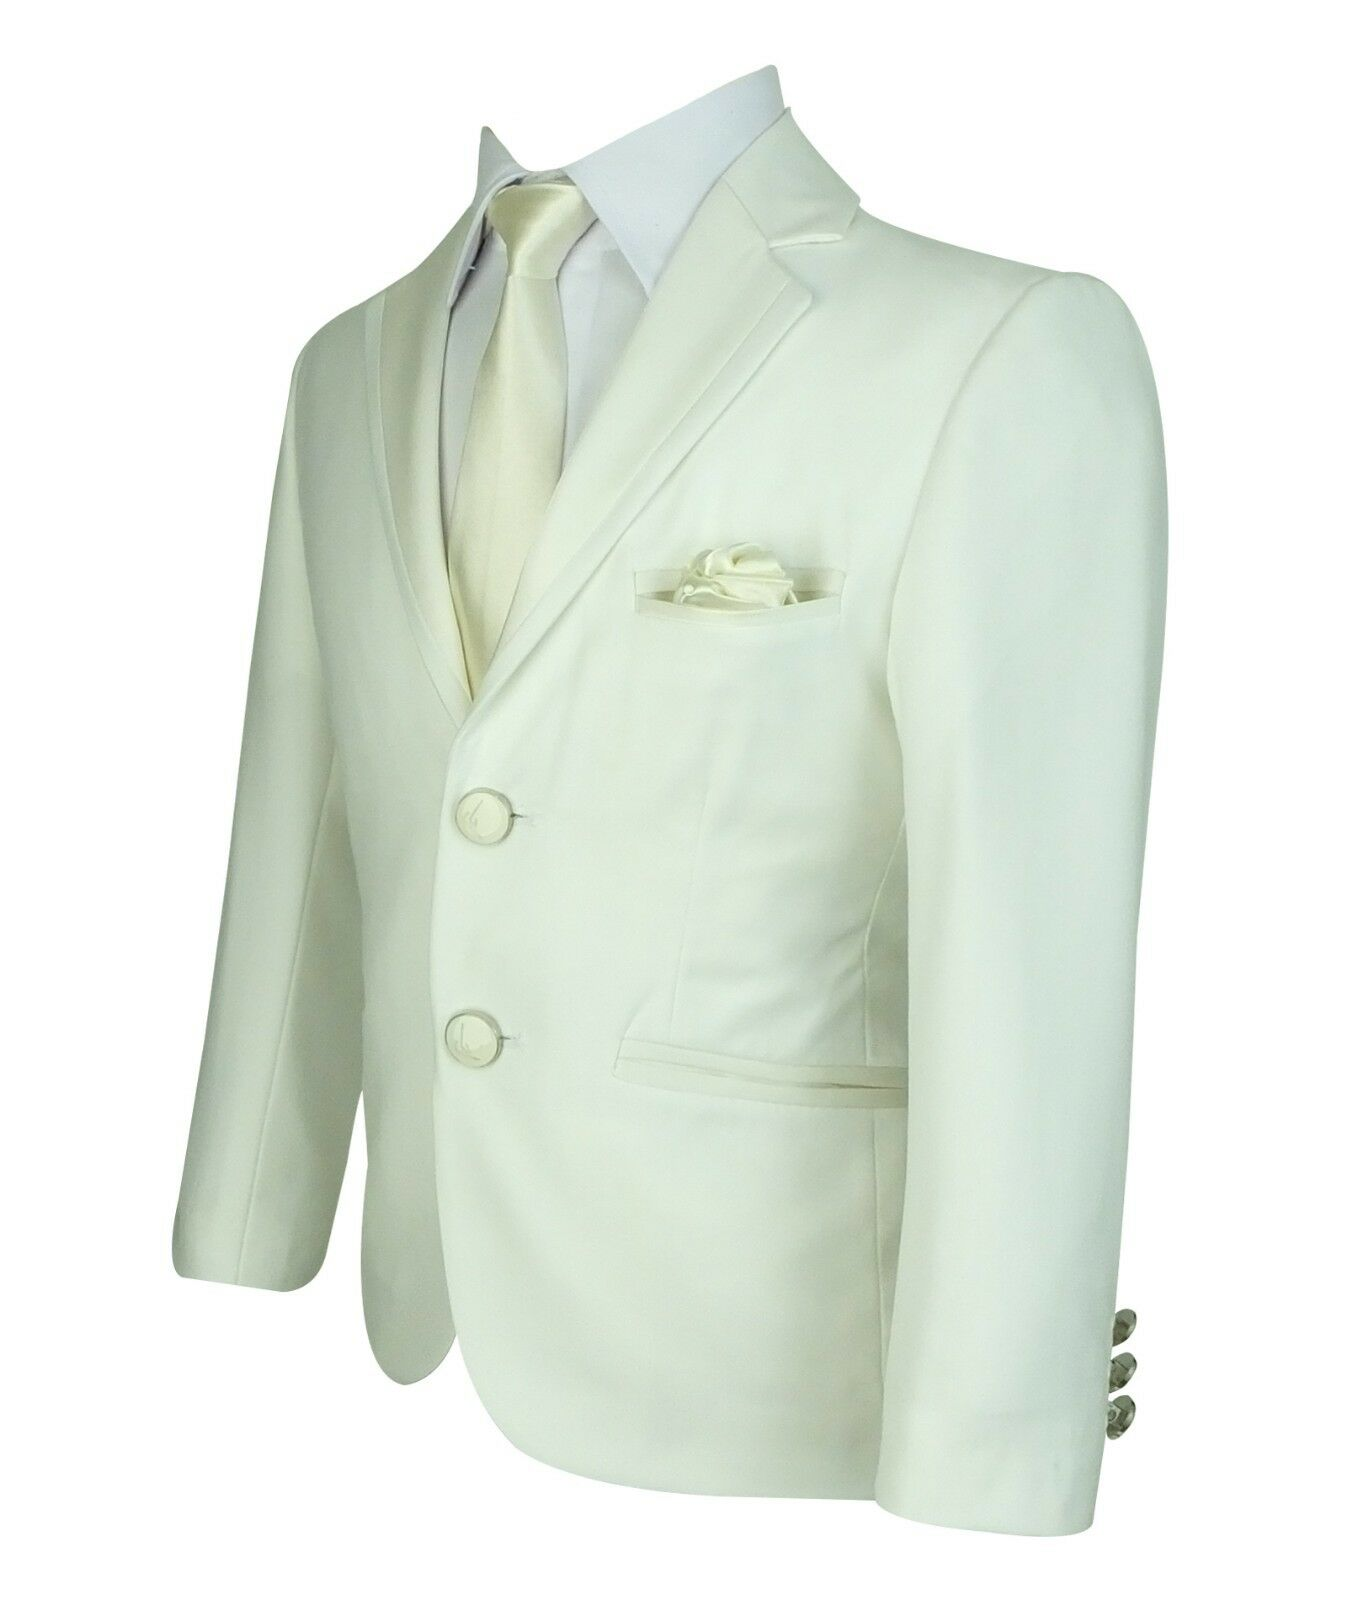 Kids Pageboy Ivory Formal Communion Suits Boys Off-White Slim Fit Suit Sirri